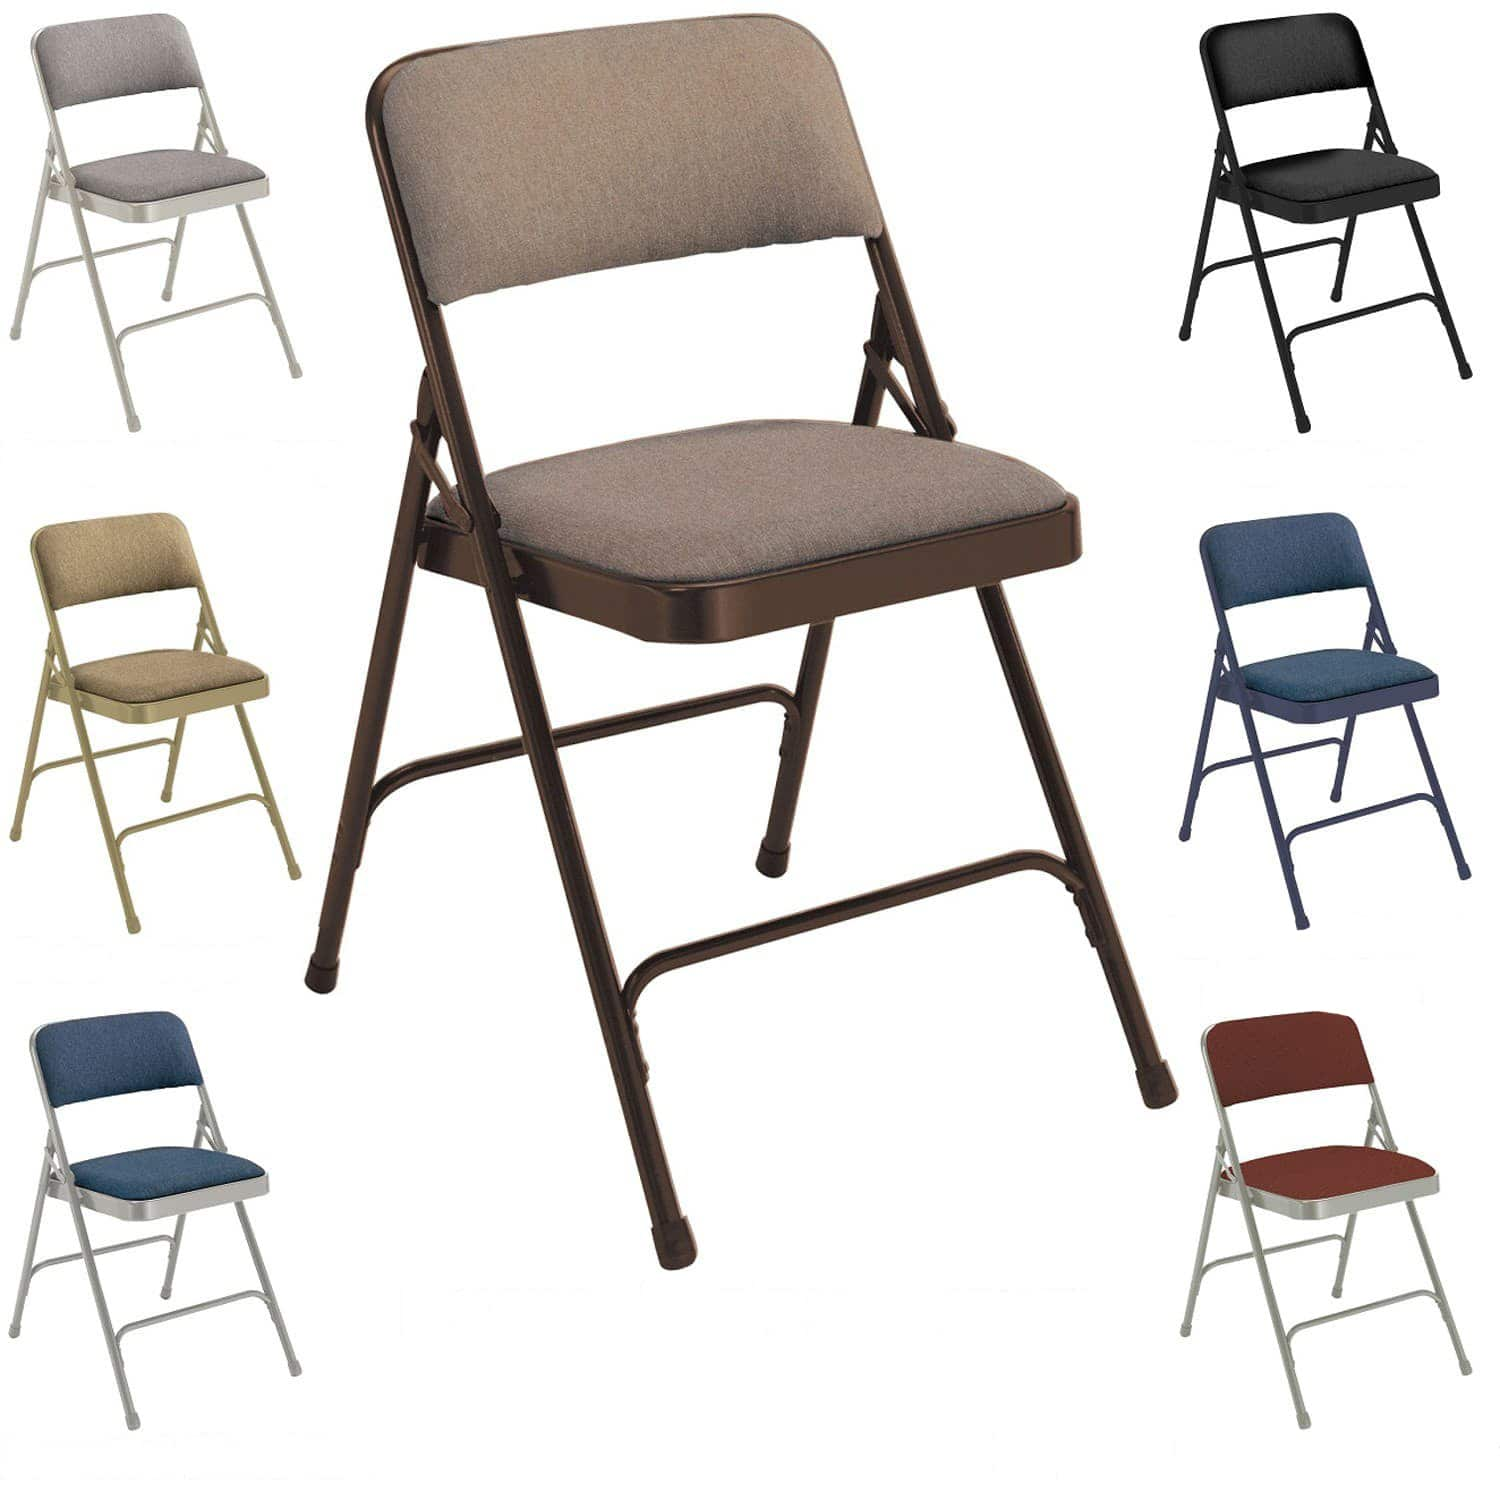 Upholstered Premium Folding Chairs